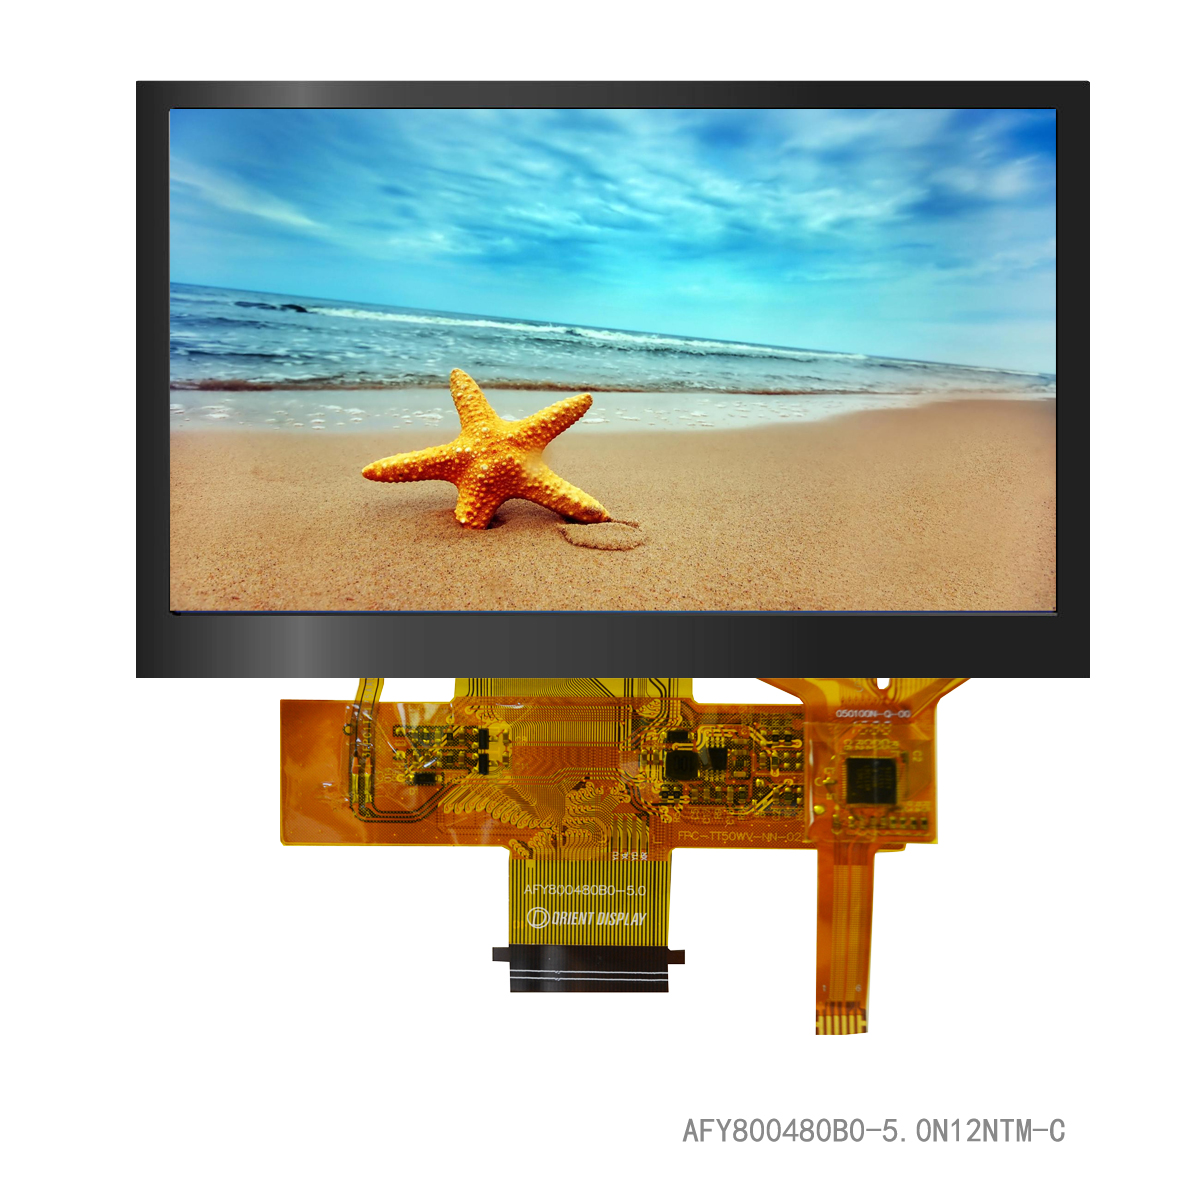 """5.0"""" TFT, 800x480, 427 Nits, with Capacitive Touch Panel"""